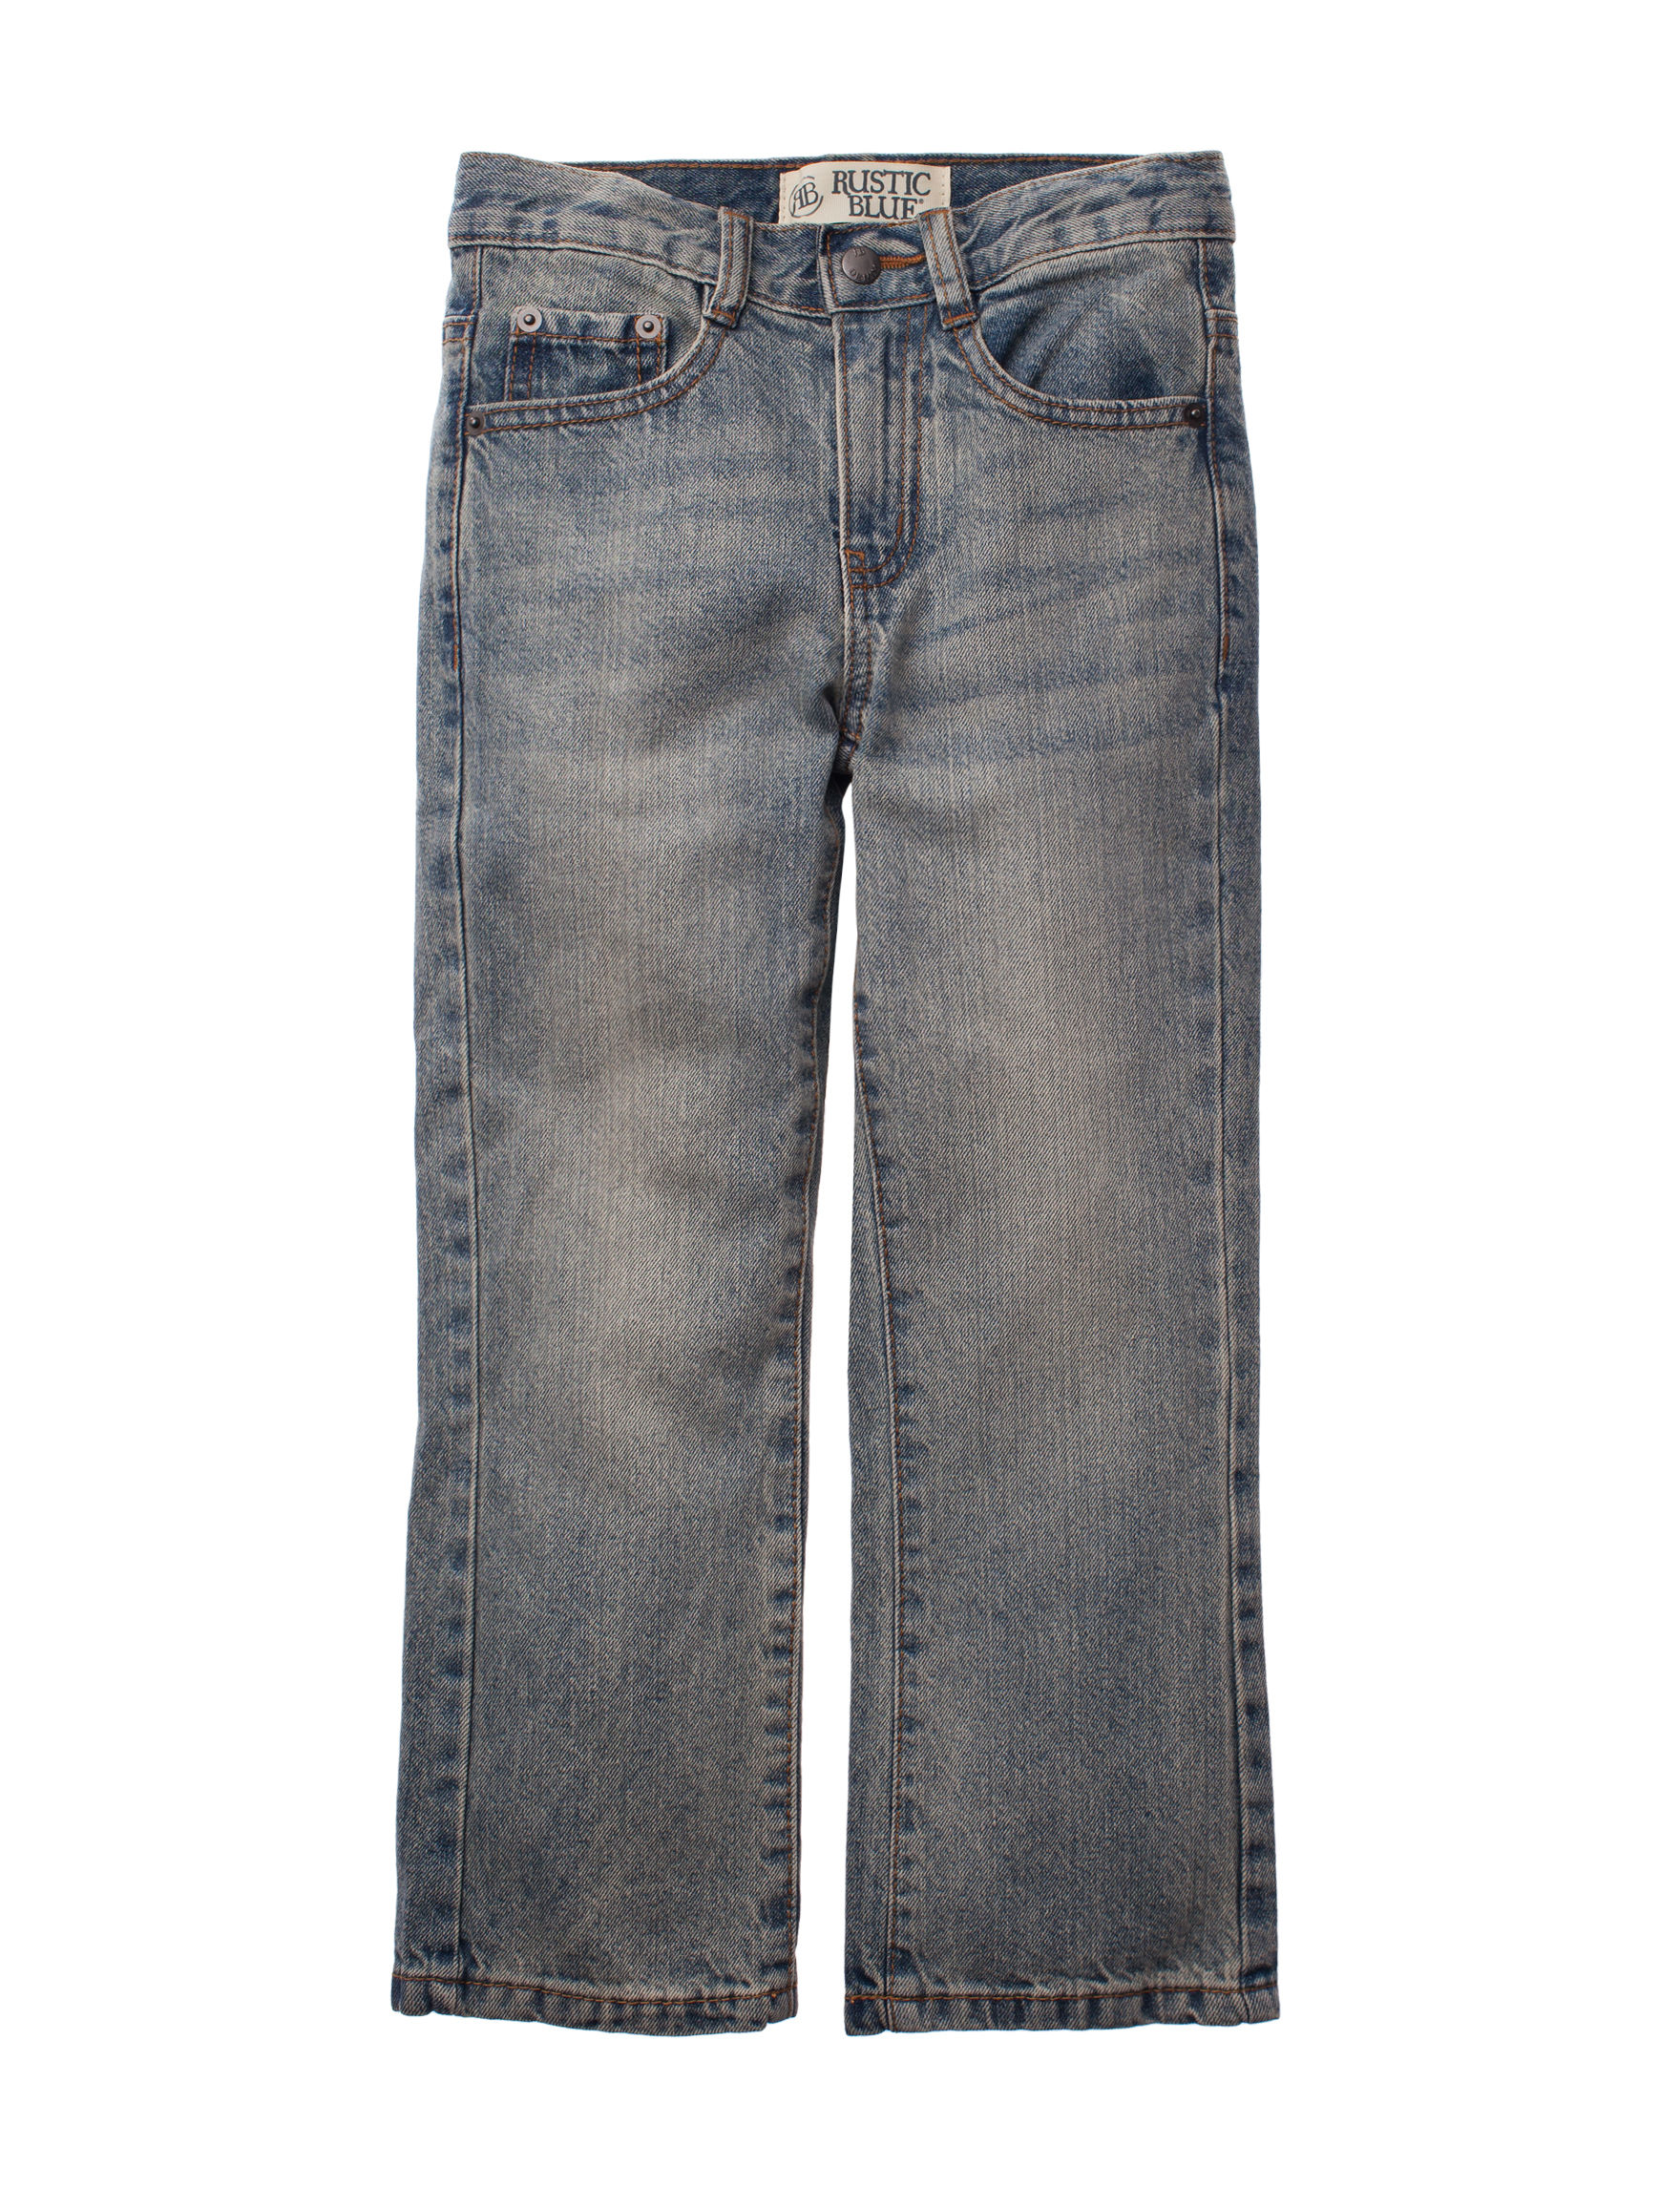 Rustic Blue Light Wash Bootcut